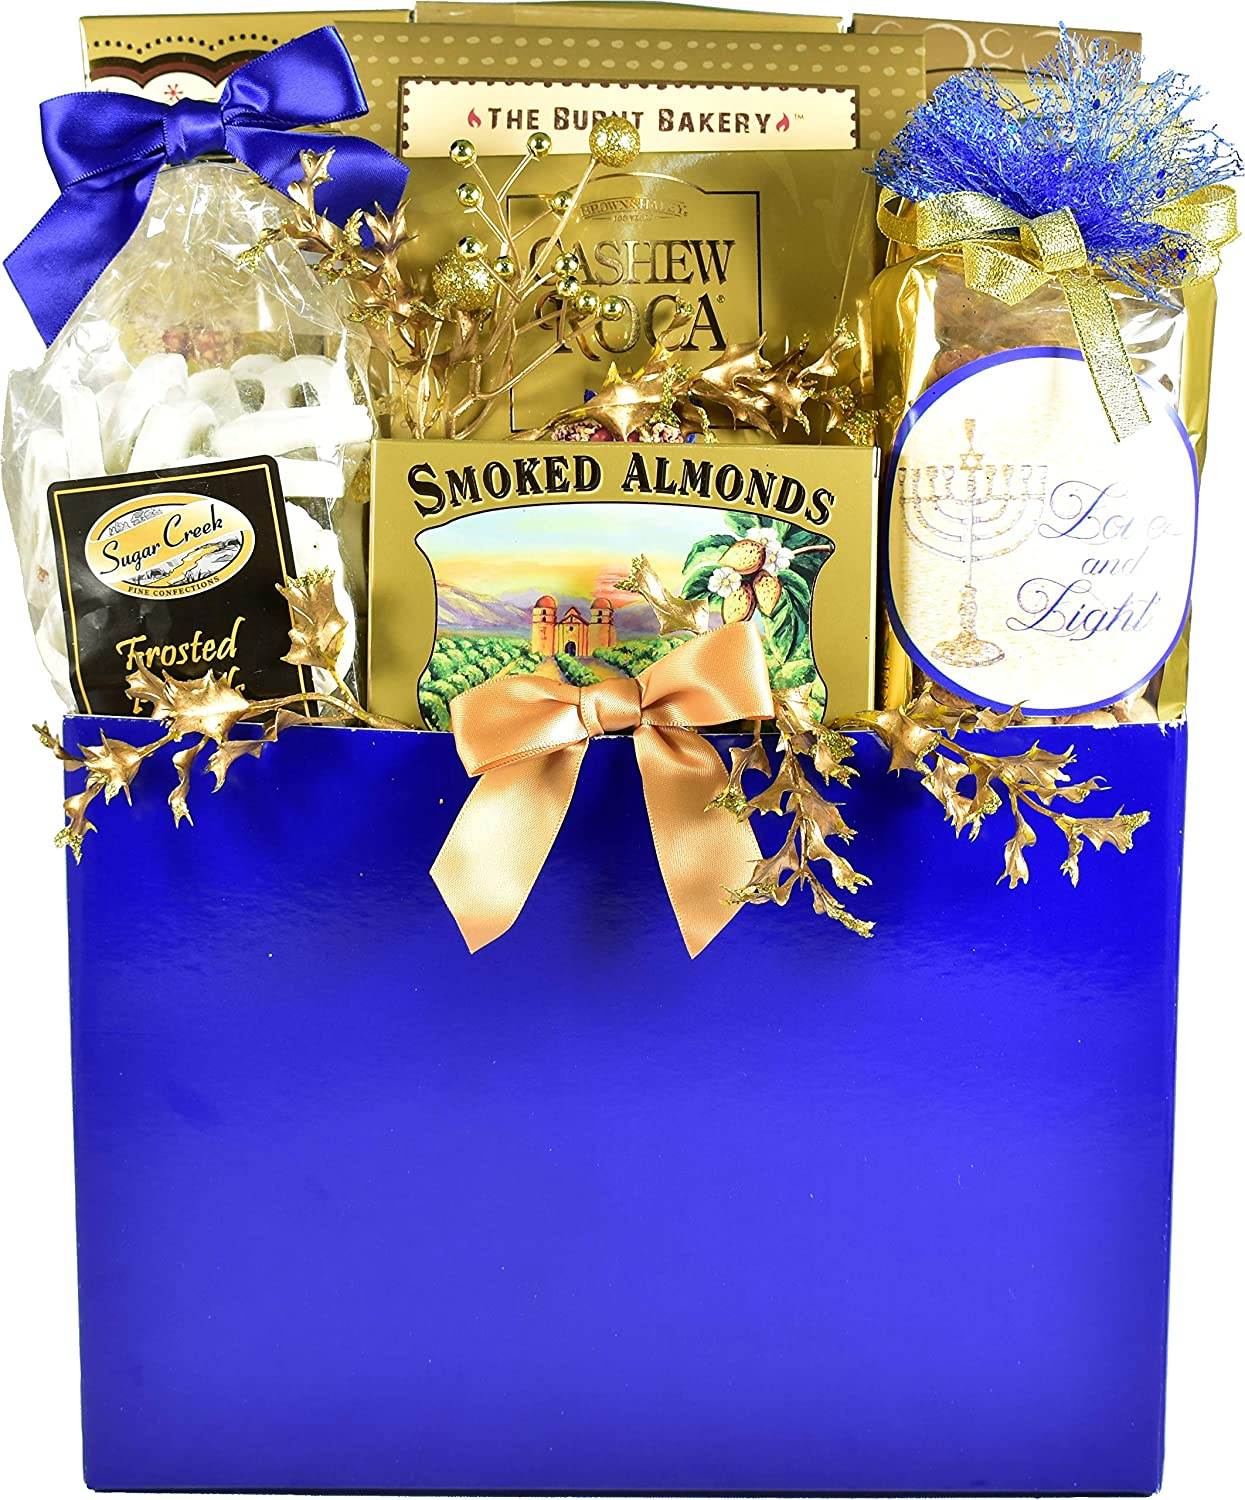 Gift Basket Village The Elegant Gourmet, Hanukkah Gift Basket with Cookies, Fudge Pretzels, Almond and Cashew Rocas, Rolled Wafer Cookies and More